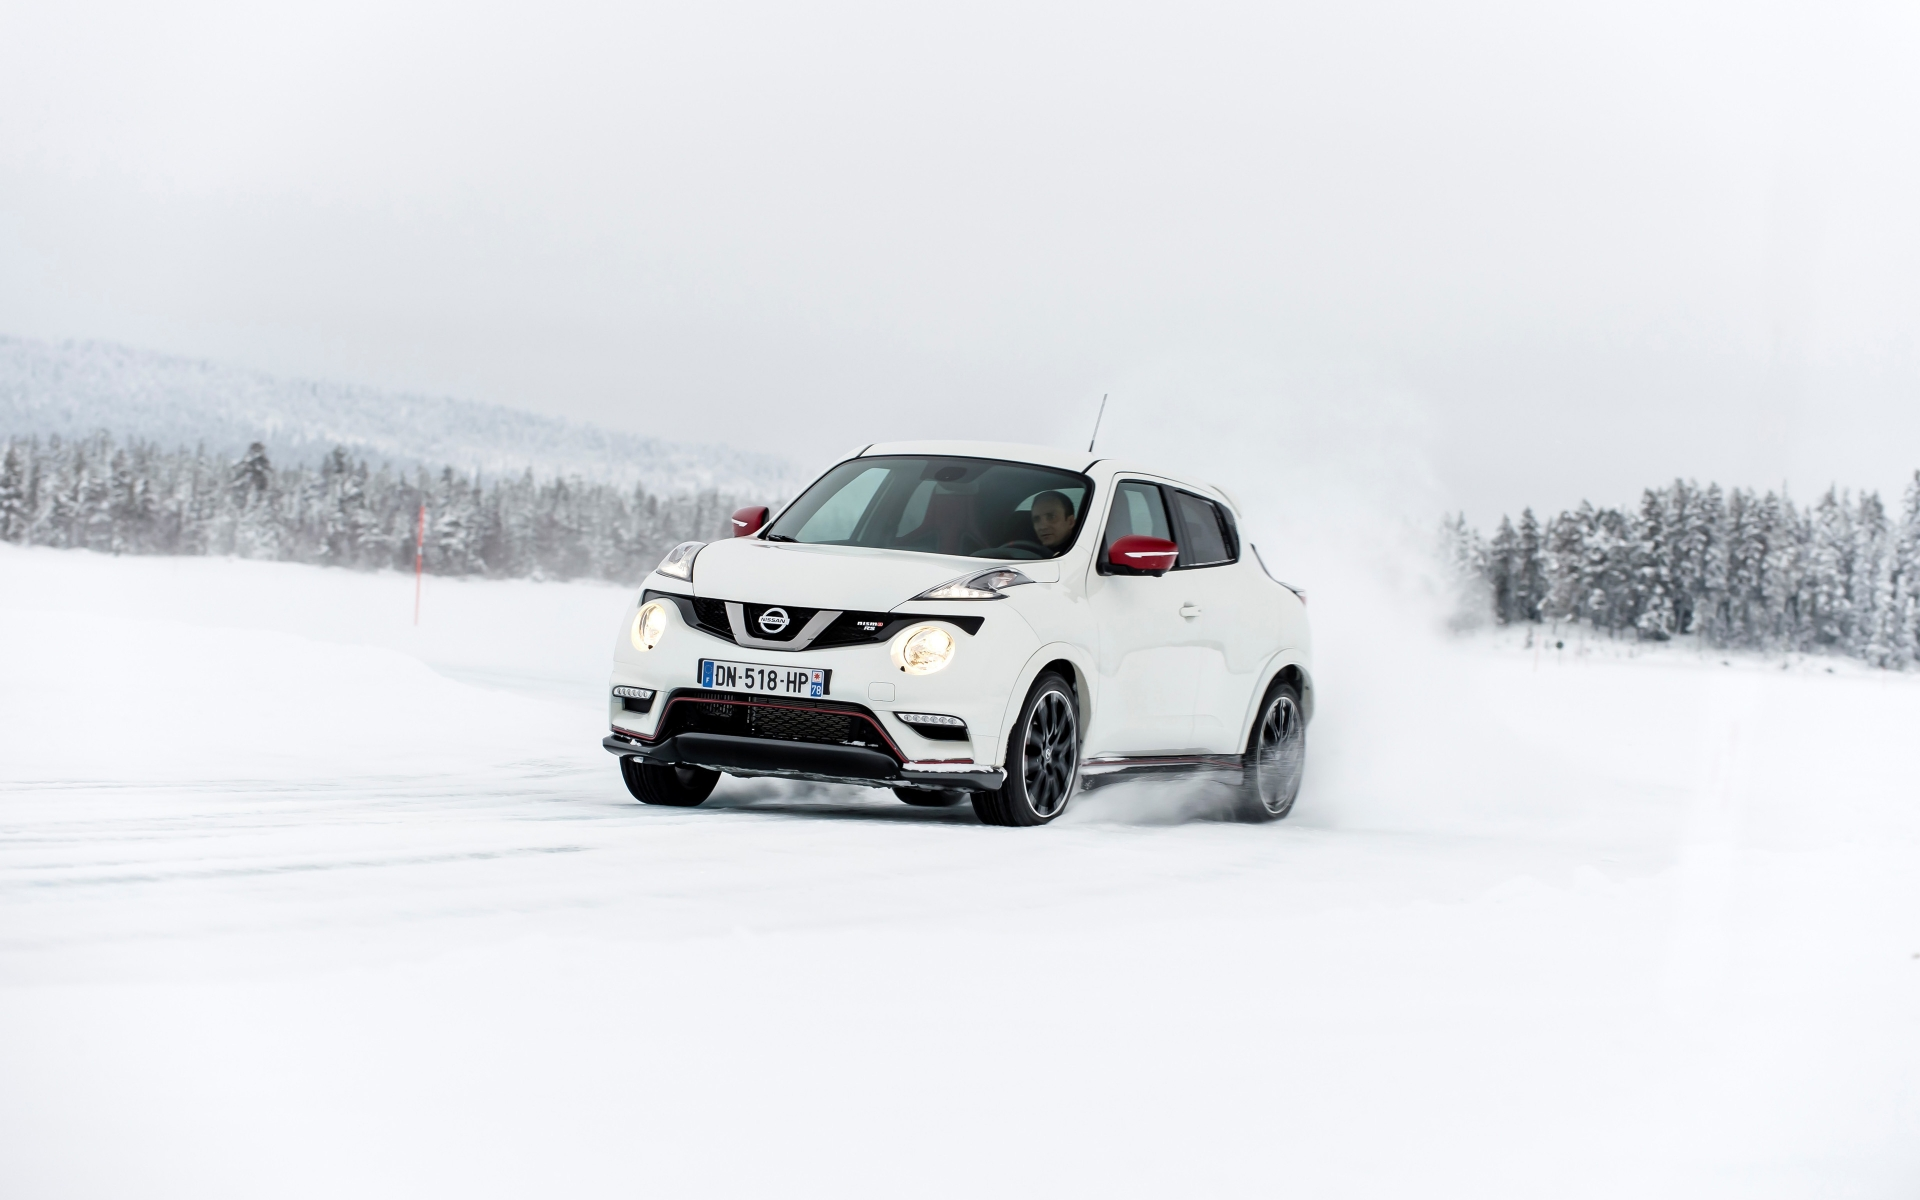 Nissan Juke Nismo RS 2015 - Photo 76 - Taille: 1920x1200